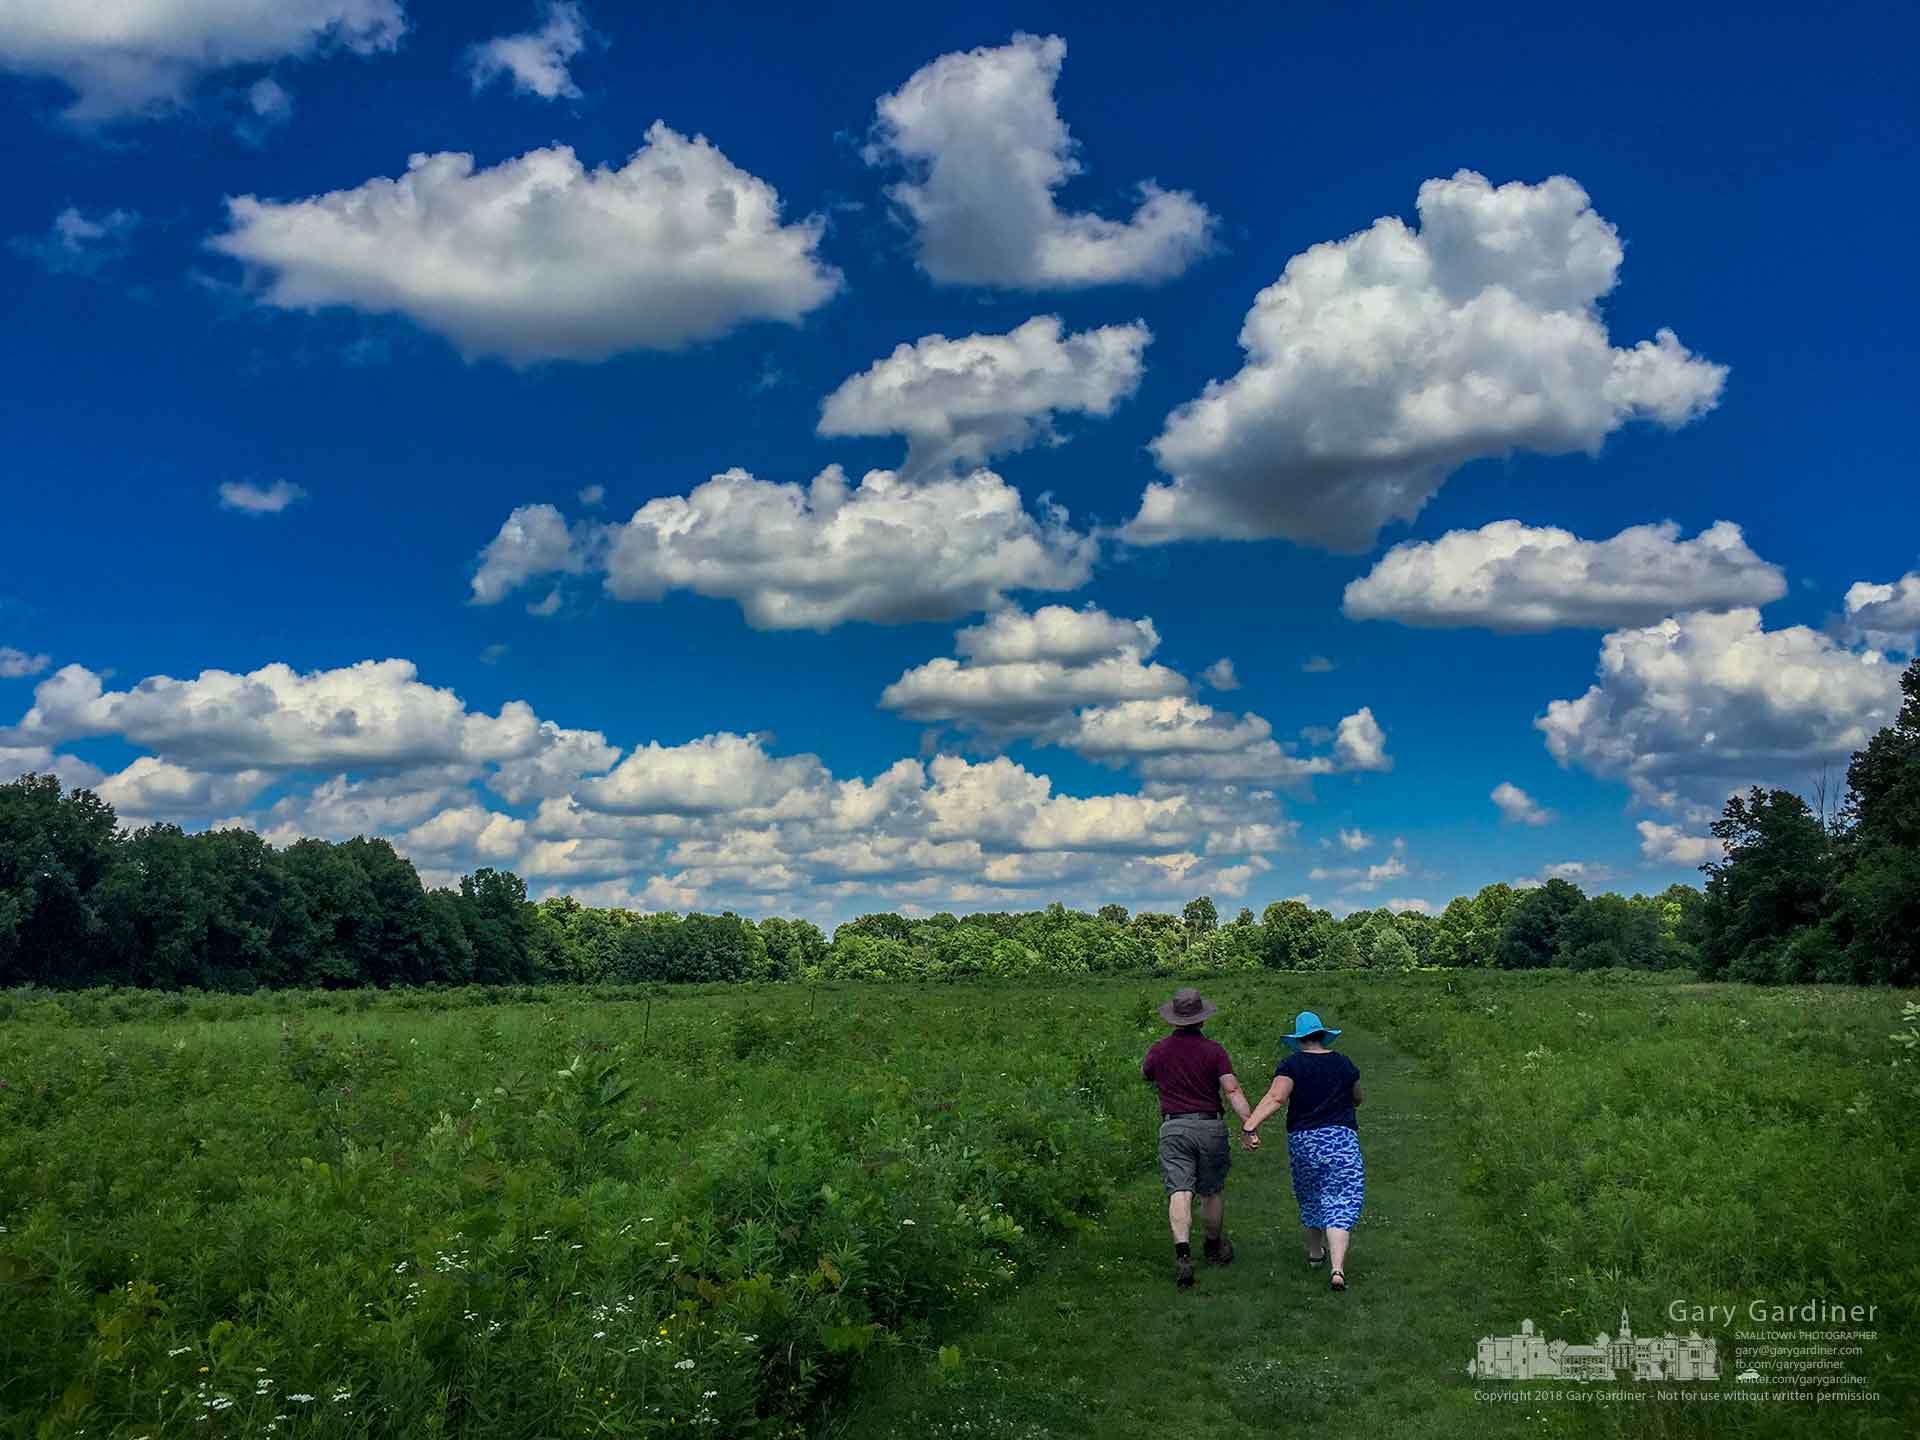 A couple walks hand-in-hand along a trail through Sharon Woods Park on a breezy Sunday afternoon. My Final Photo for June 24, 2018.